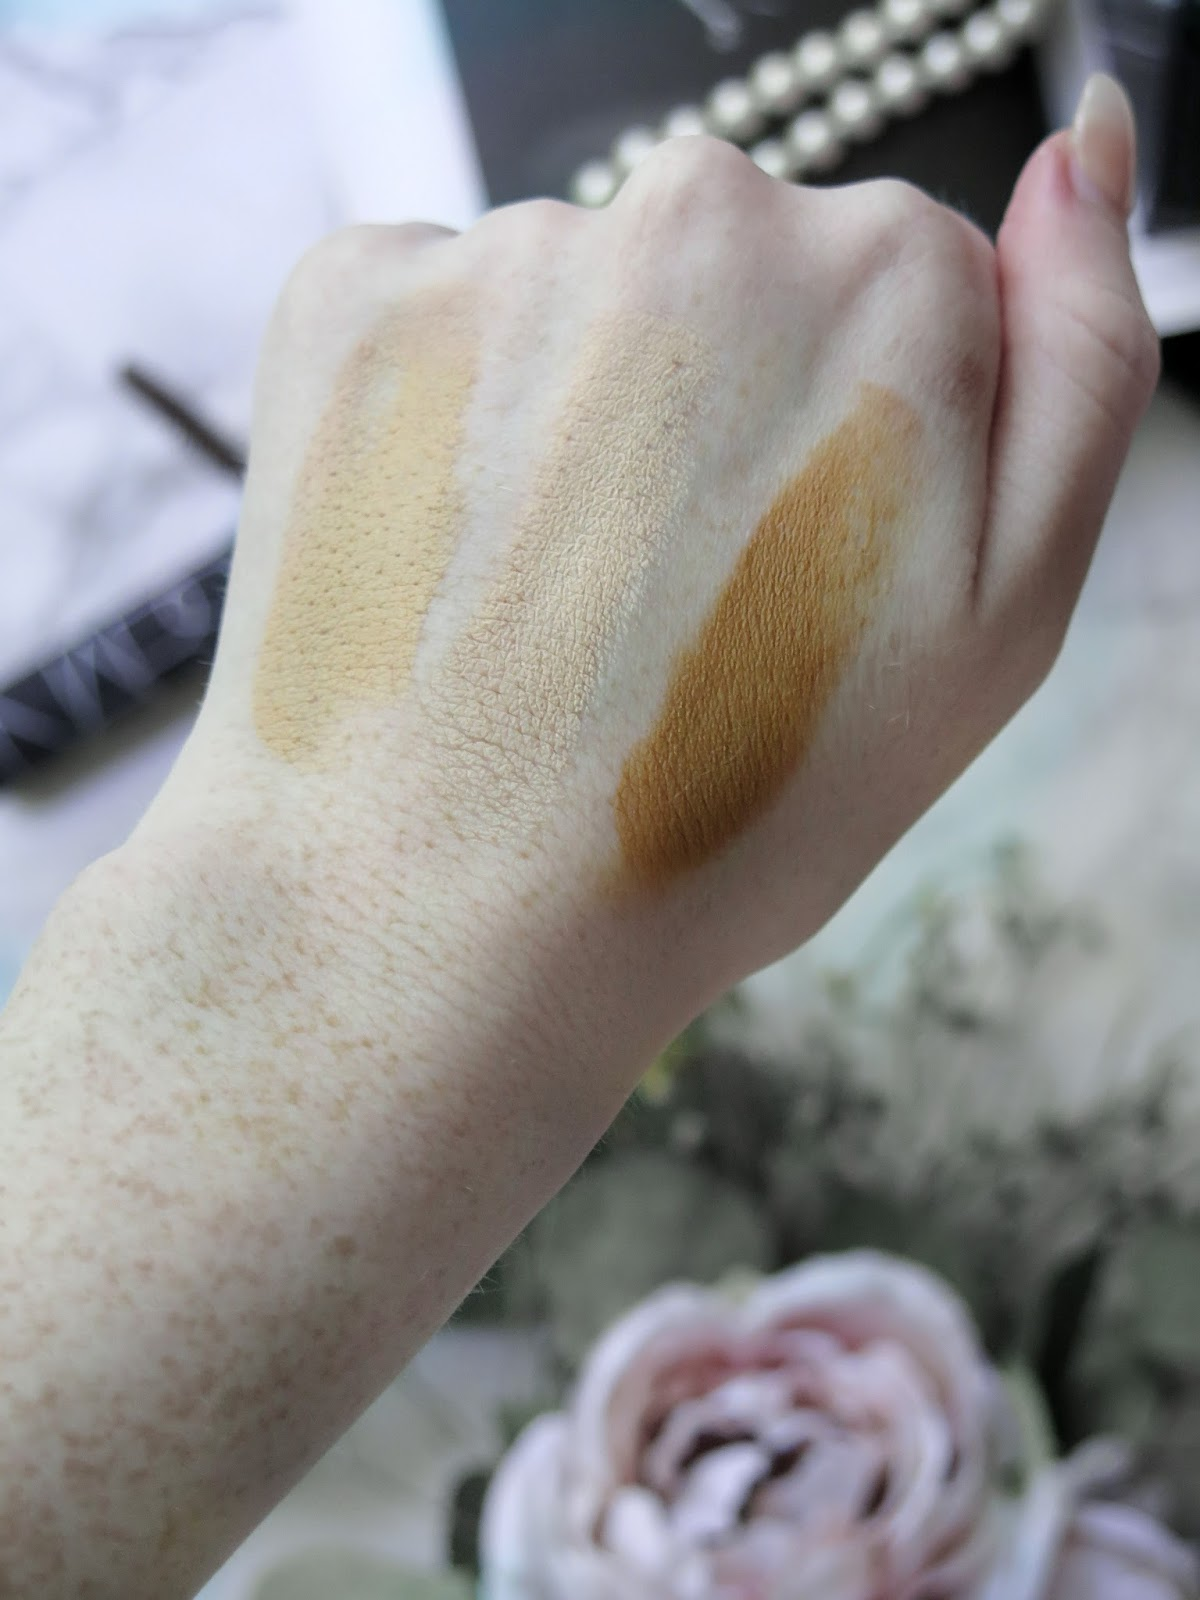 Blend The Rules | NEW NARS Soft Matte Foundation Stick | NEW Fall Shades of the Audacious Lipsticks & Mascara | Review & Swatches | labellesirene.ca